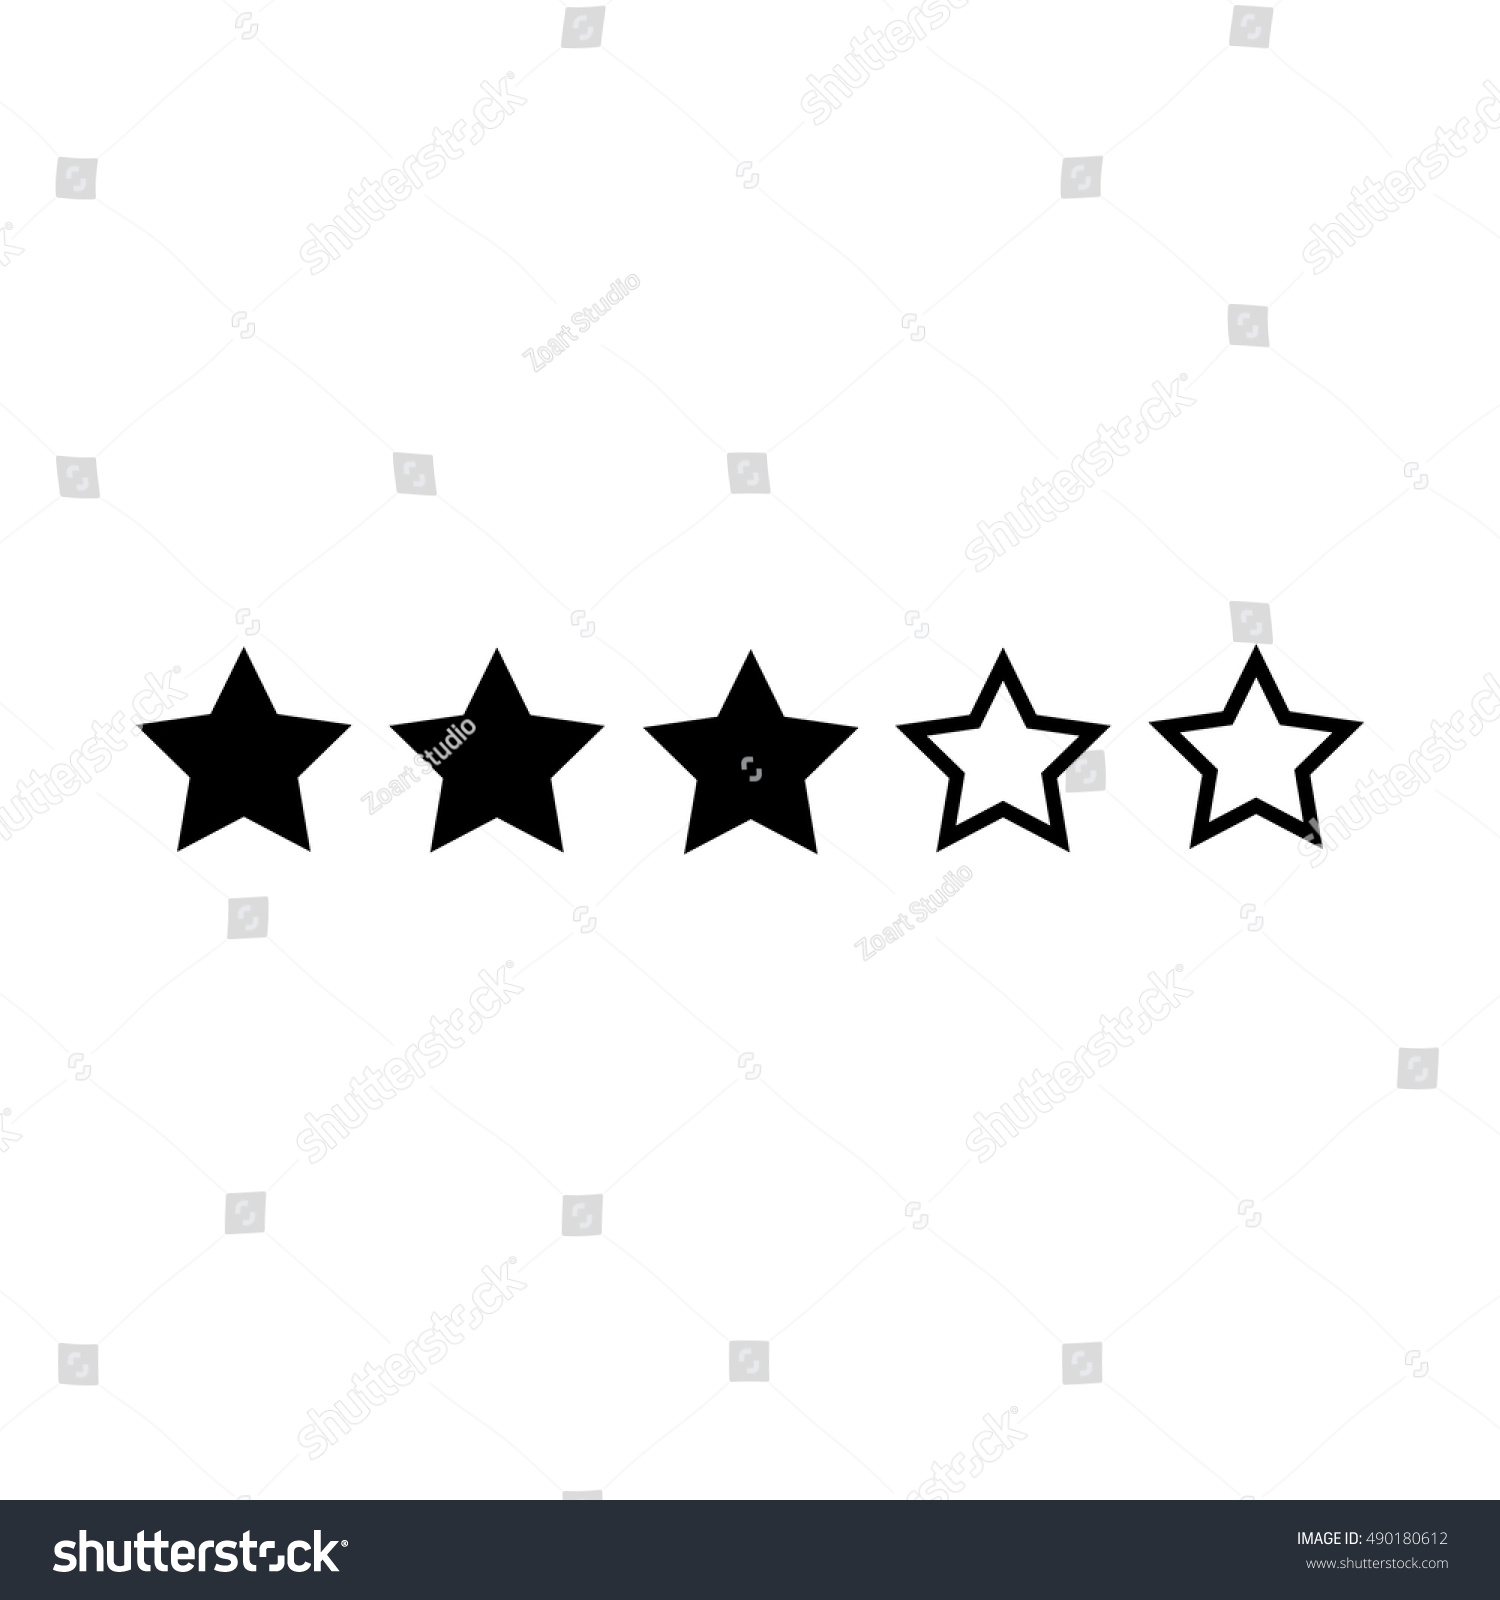 Three Star Hotel Business Concept Vector Stock Vector Royalty Free